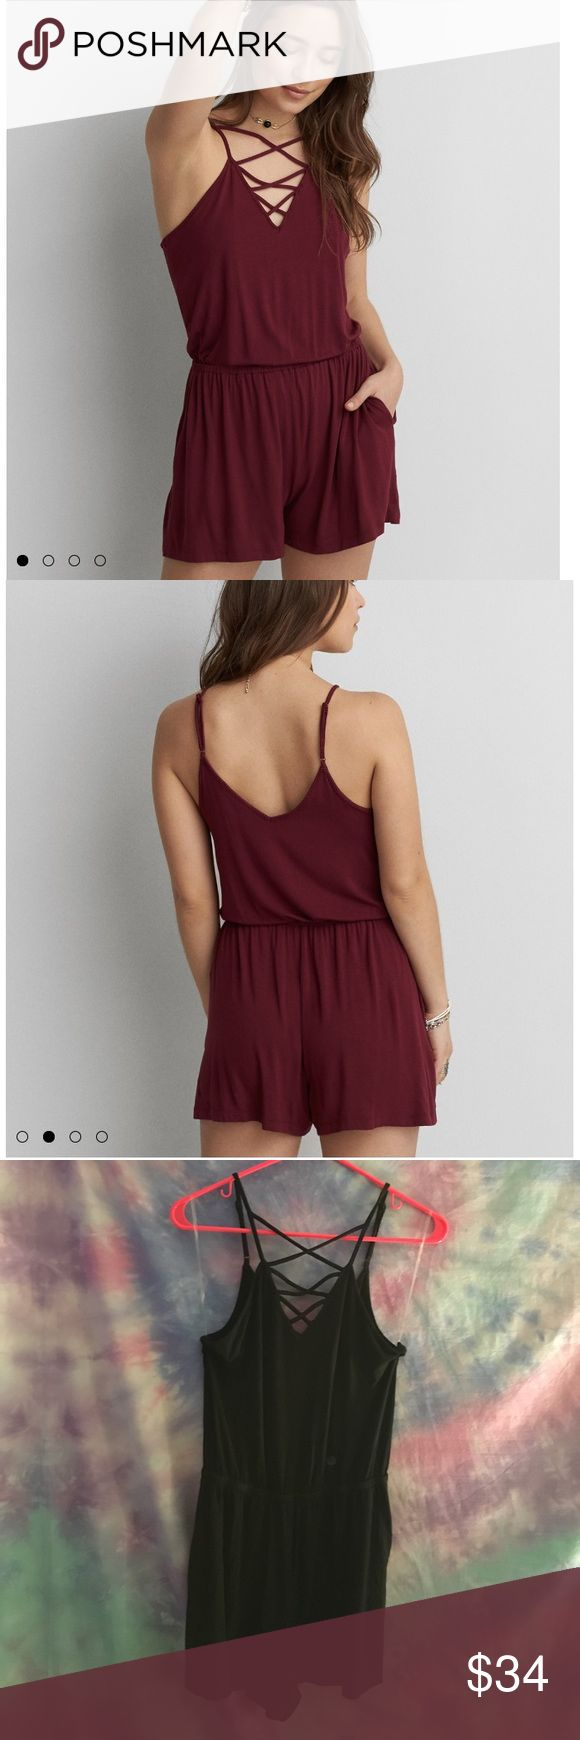 ⚠️Final Price! Black AEO Romper Actual romper is black! Couldn't find a black stock photo! Super soft, and super cute romper with pockets! ⚠️Will be keeping if it doesn't sell quickly!⚠️ American Eagle Outfitters Dresses